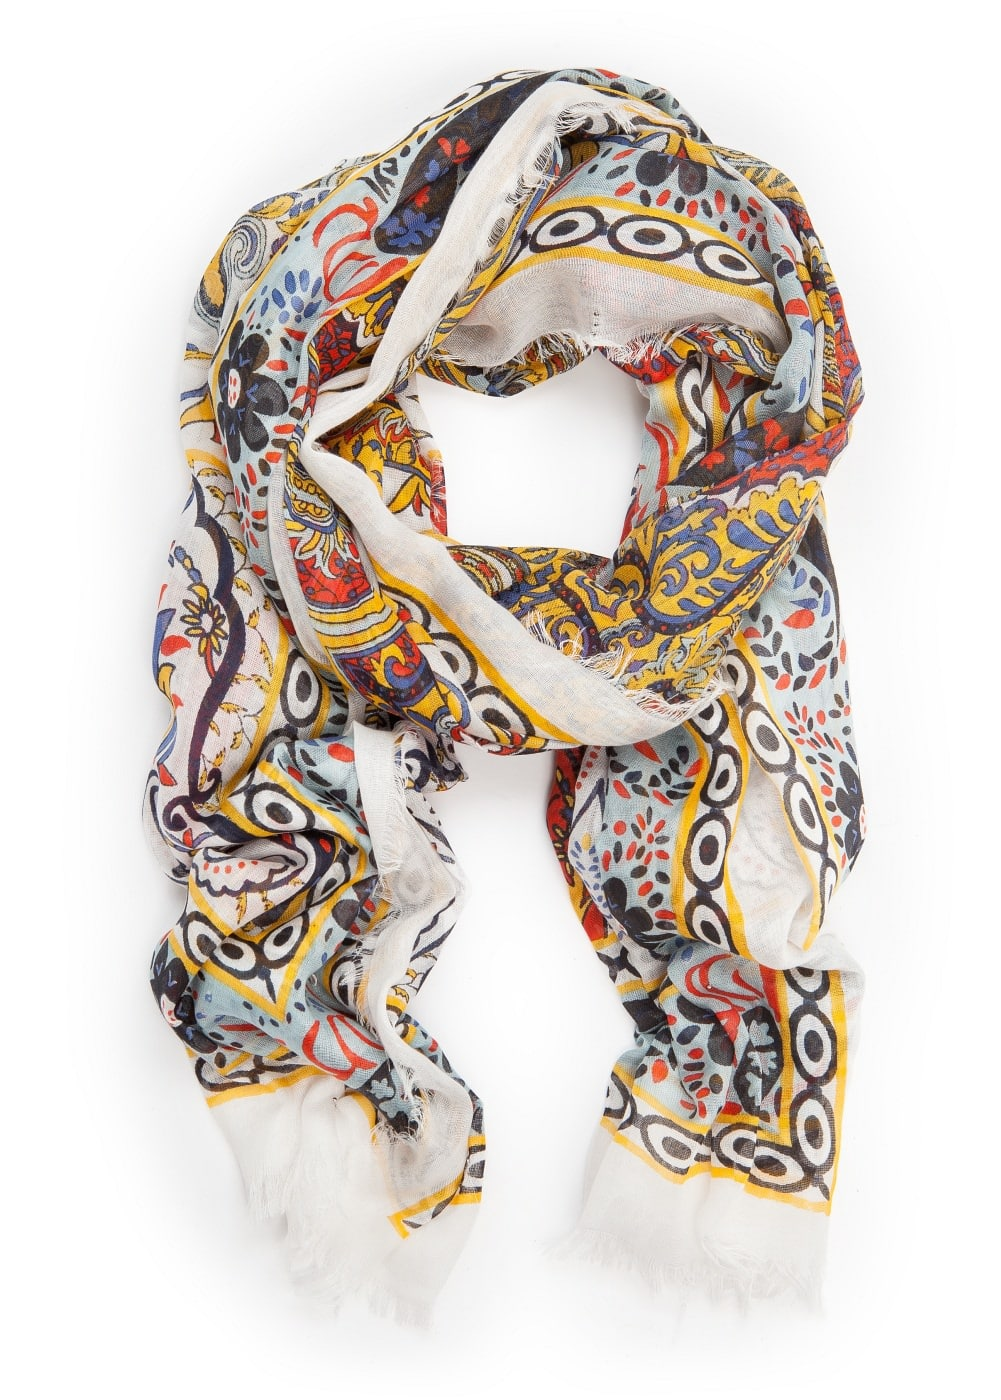 Schal mit Paisley-Muster